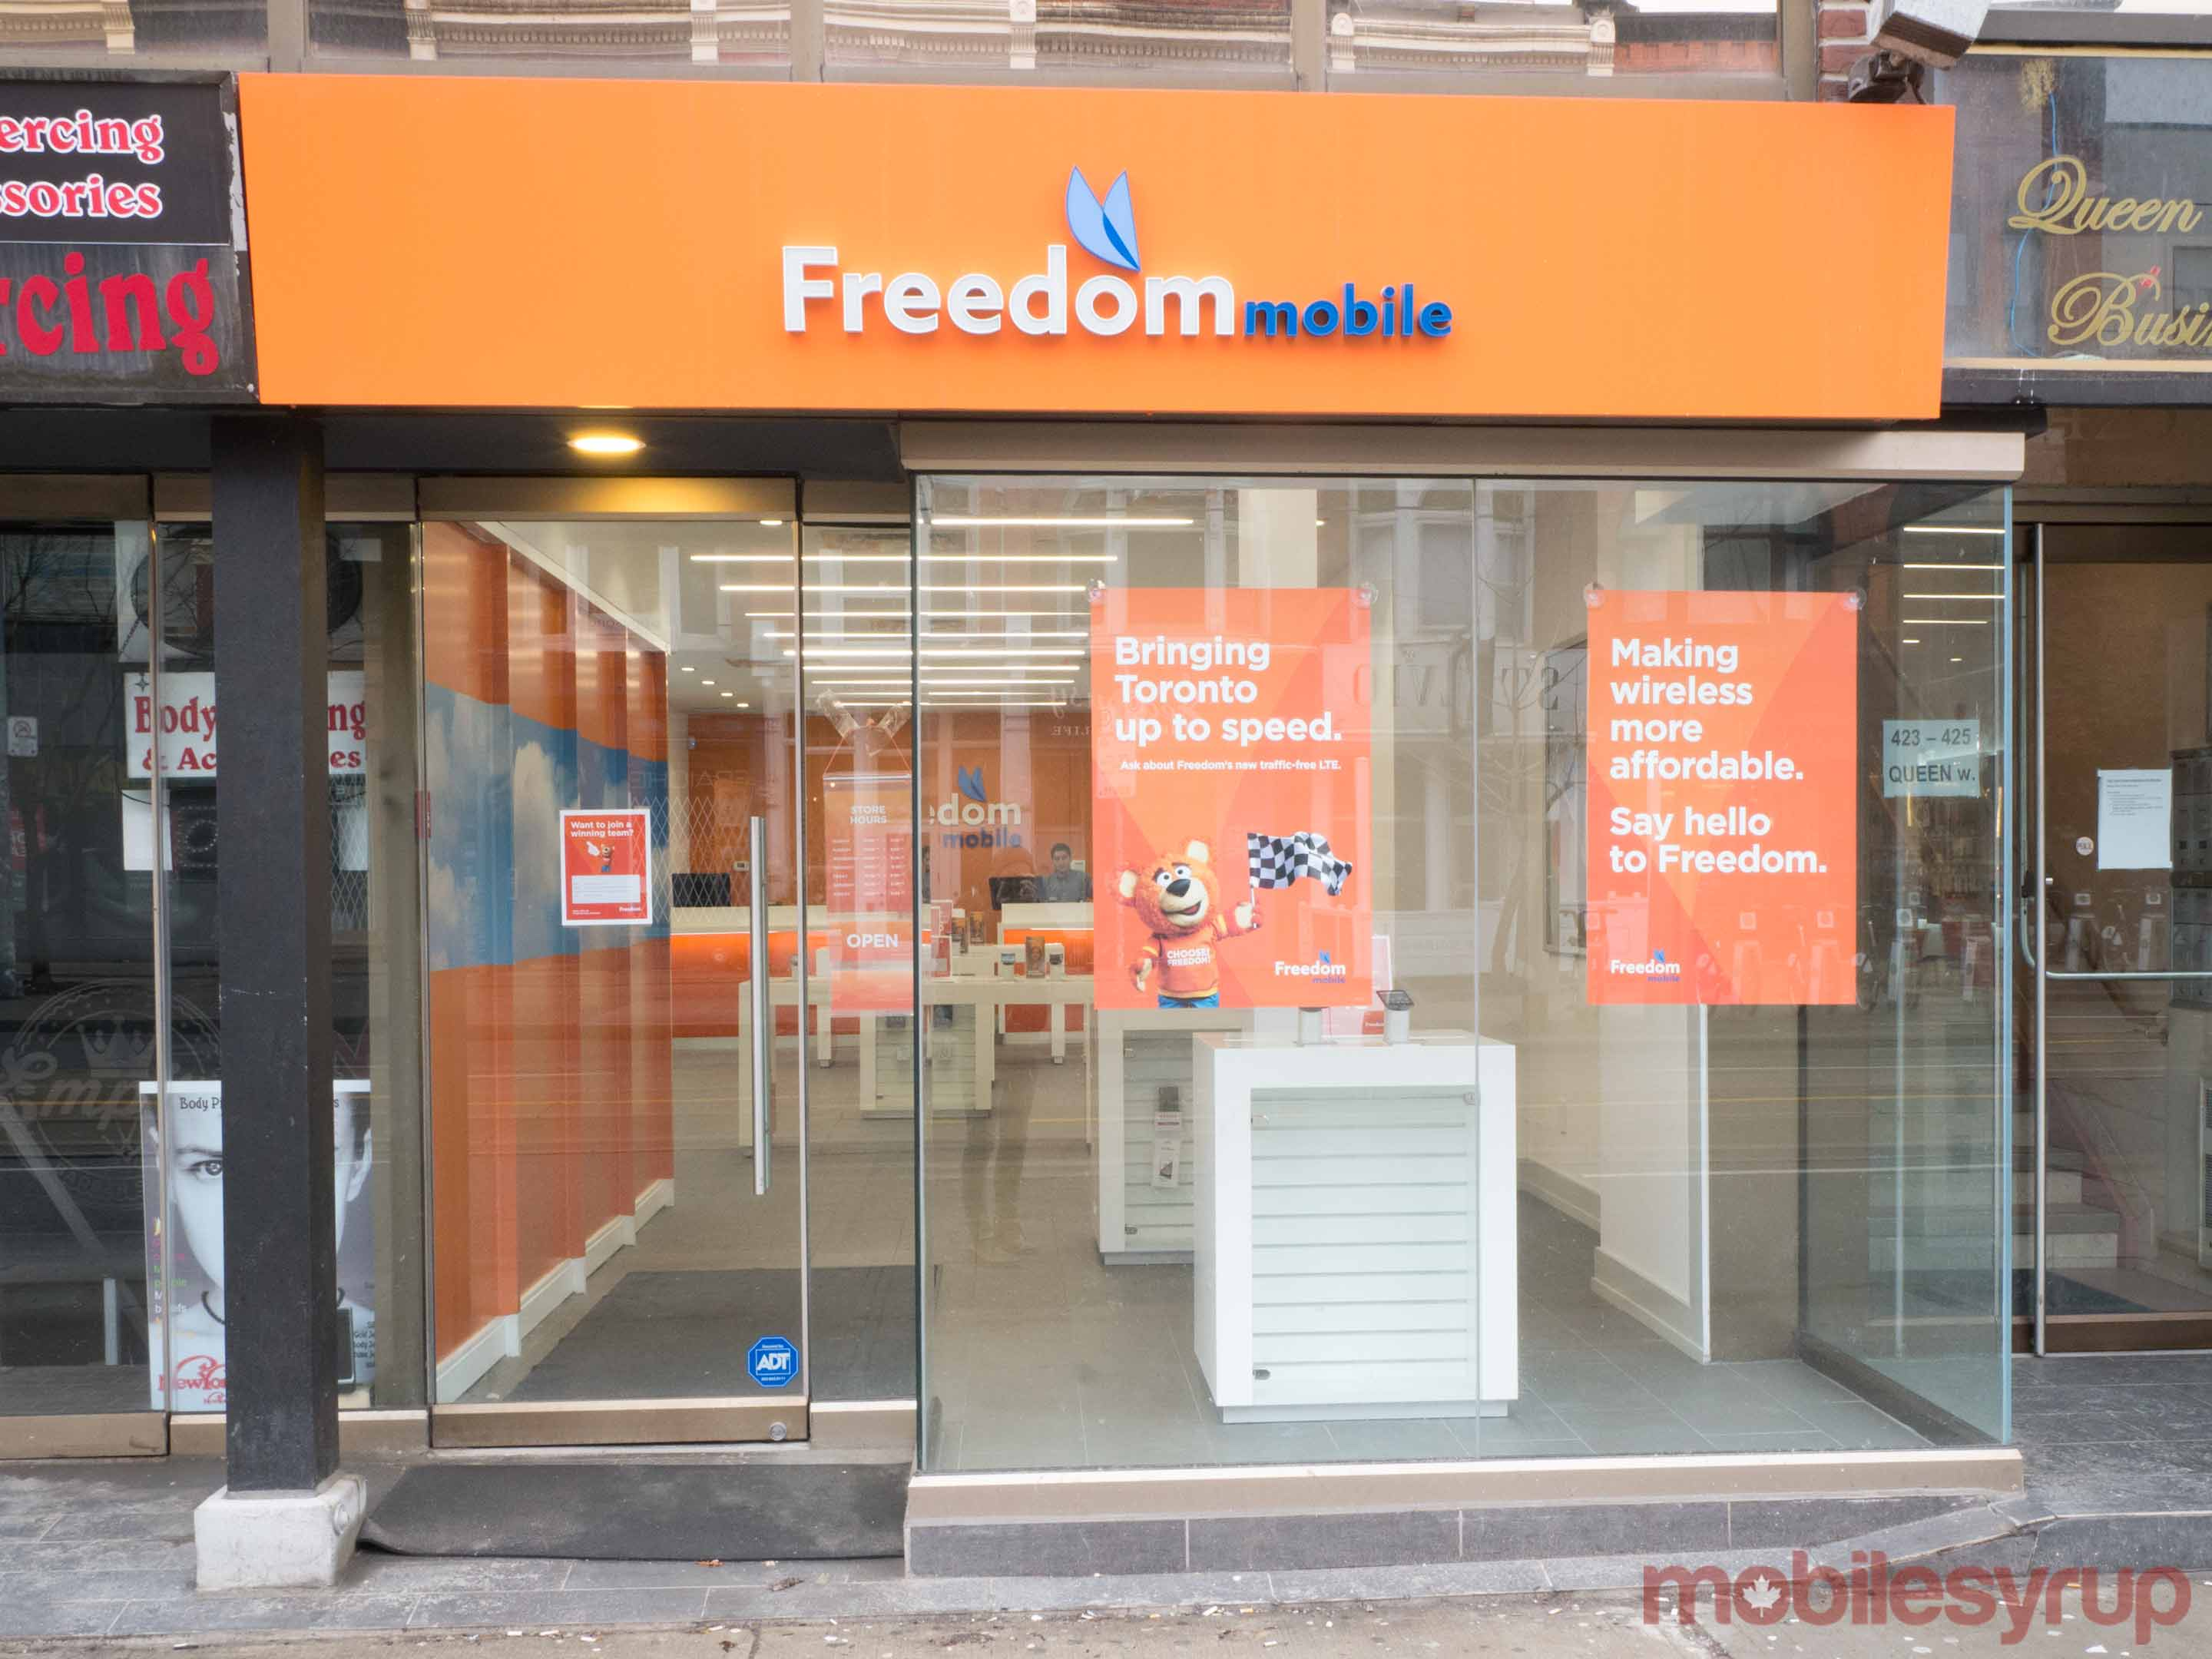 How fast is freedom mobiles lte network in toronto mobilesyrup oshaughnessy adds that he believes it will be at least a couple years before customers have to worry about congestion issues on the carriers network solutioingenieria